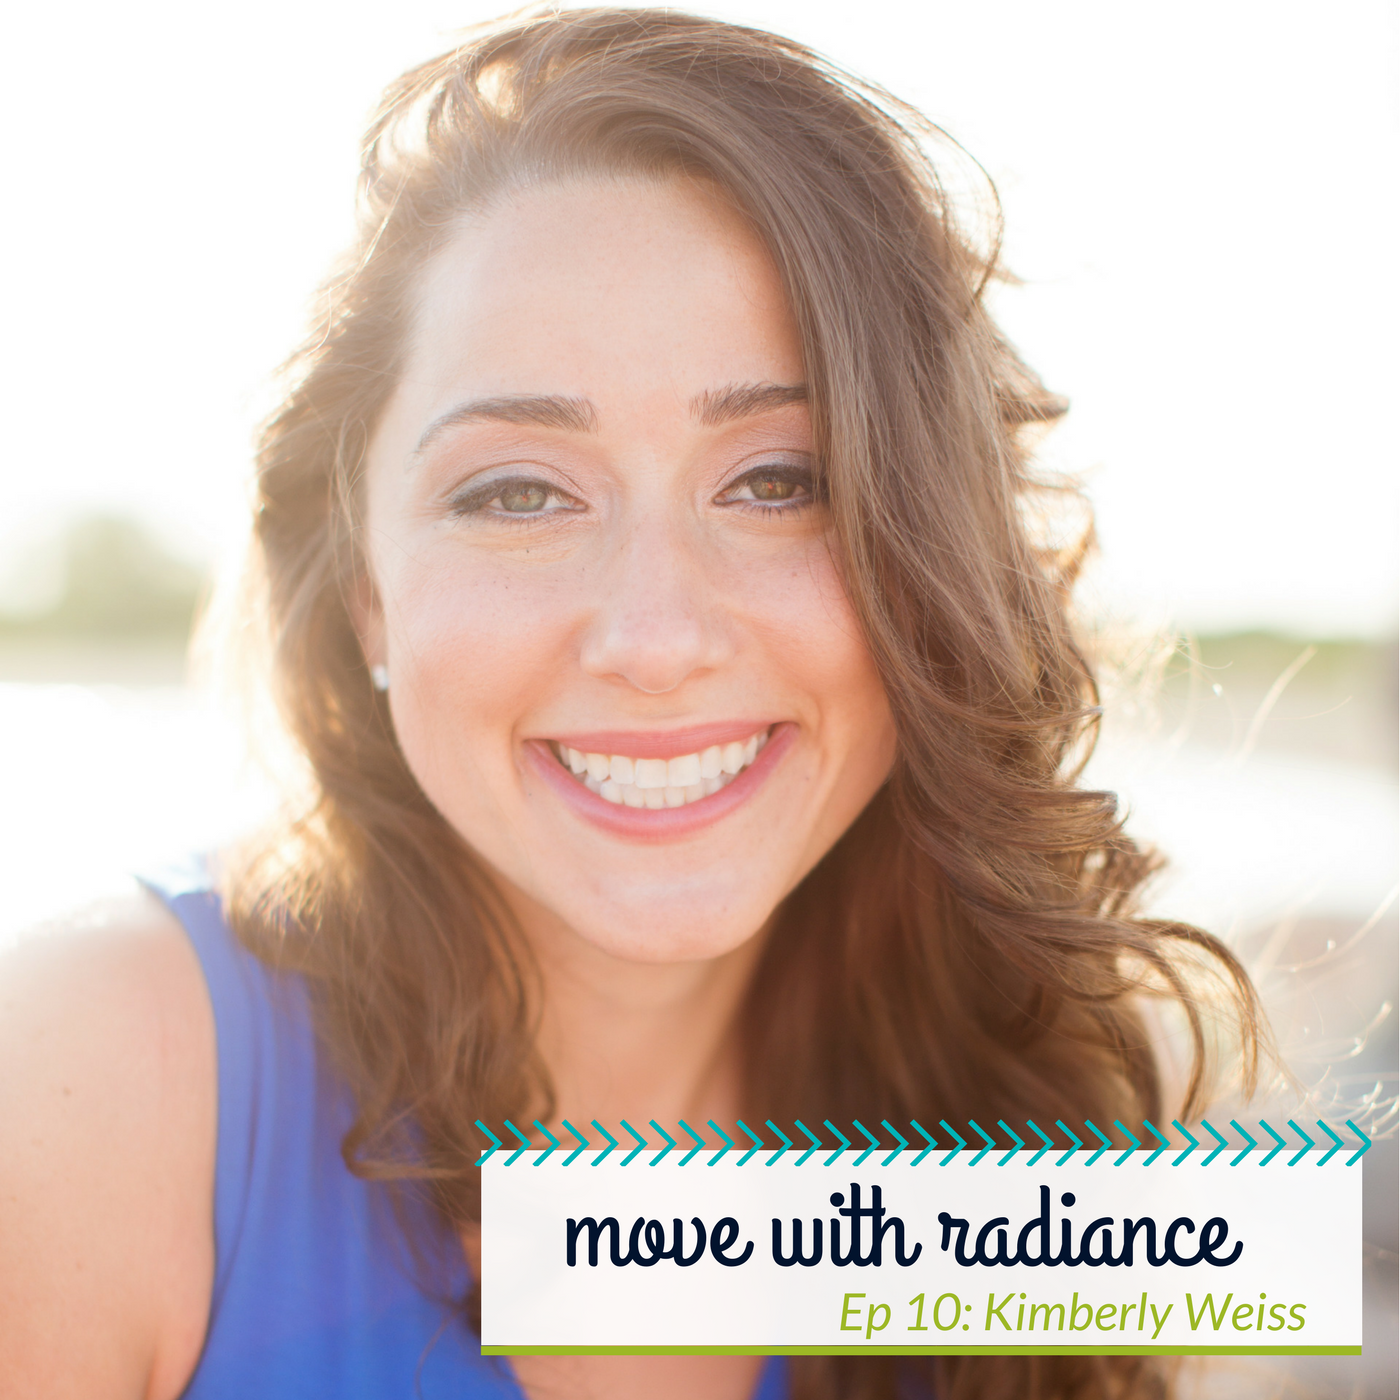 move with radiance (9) (1).png